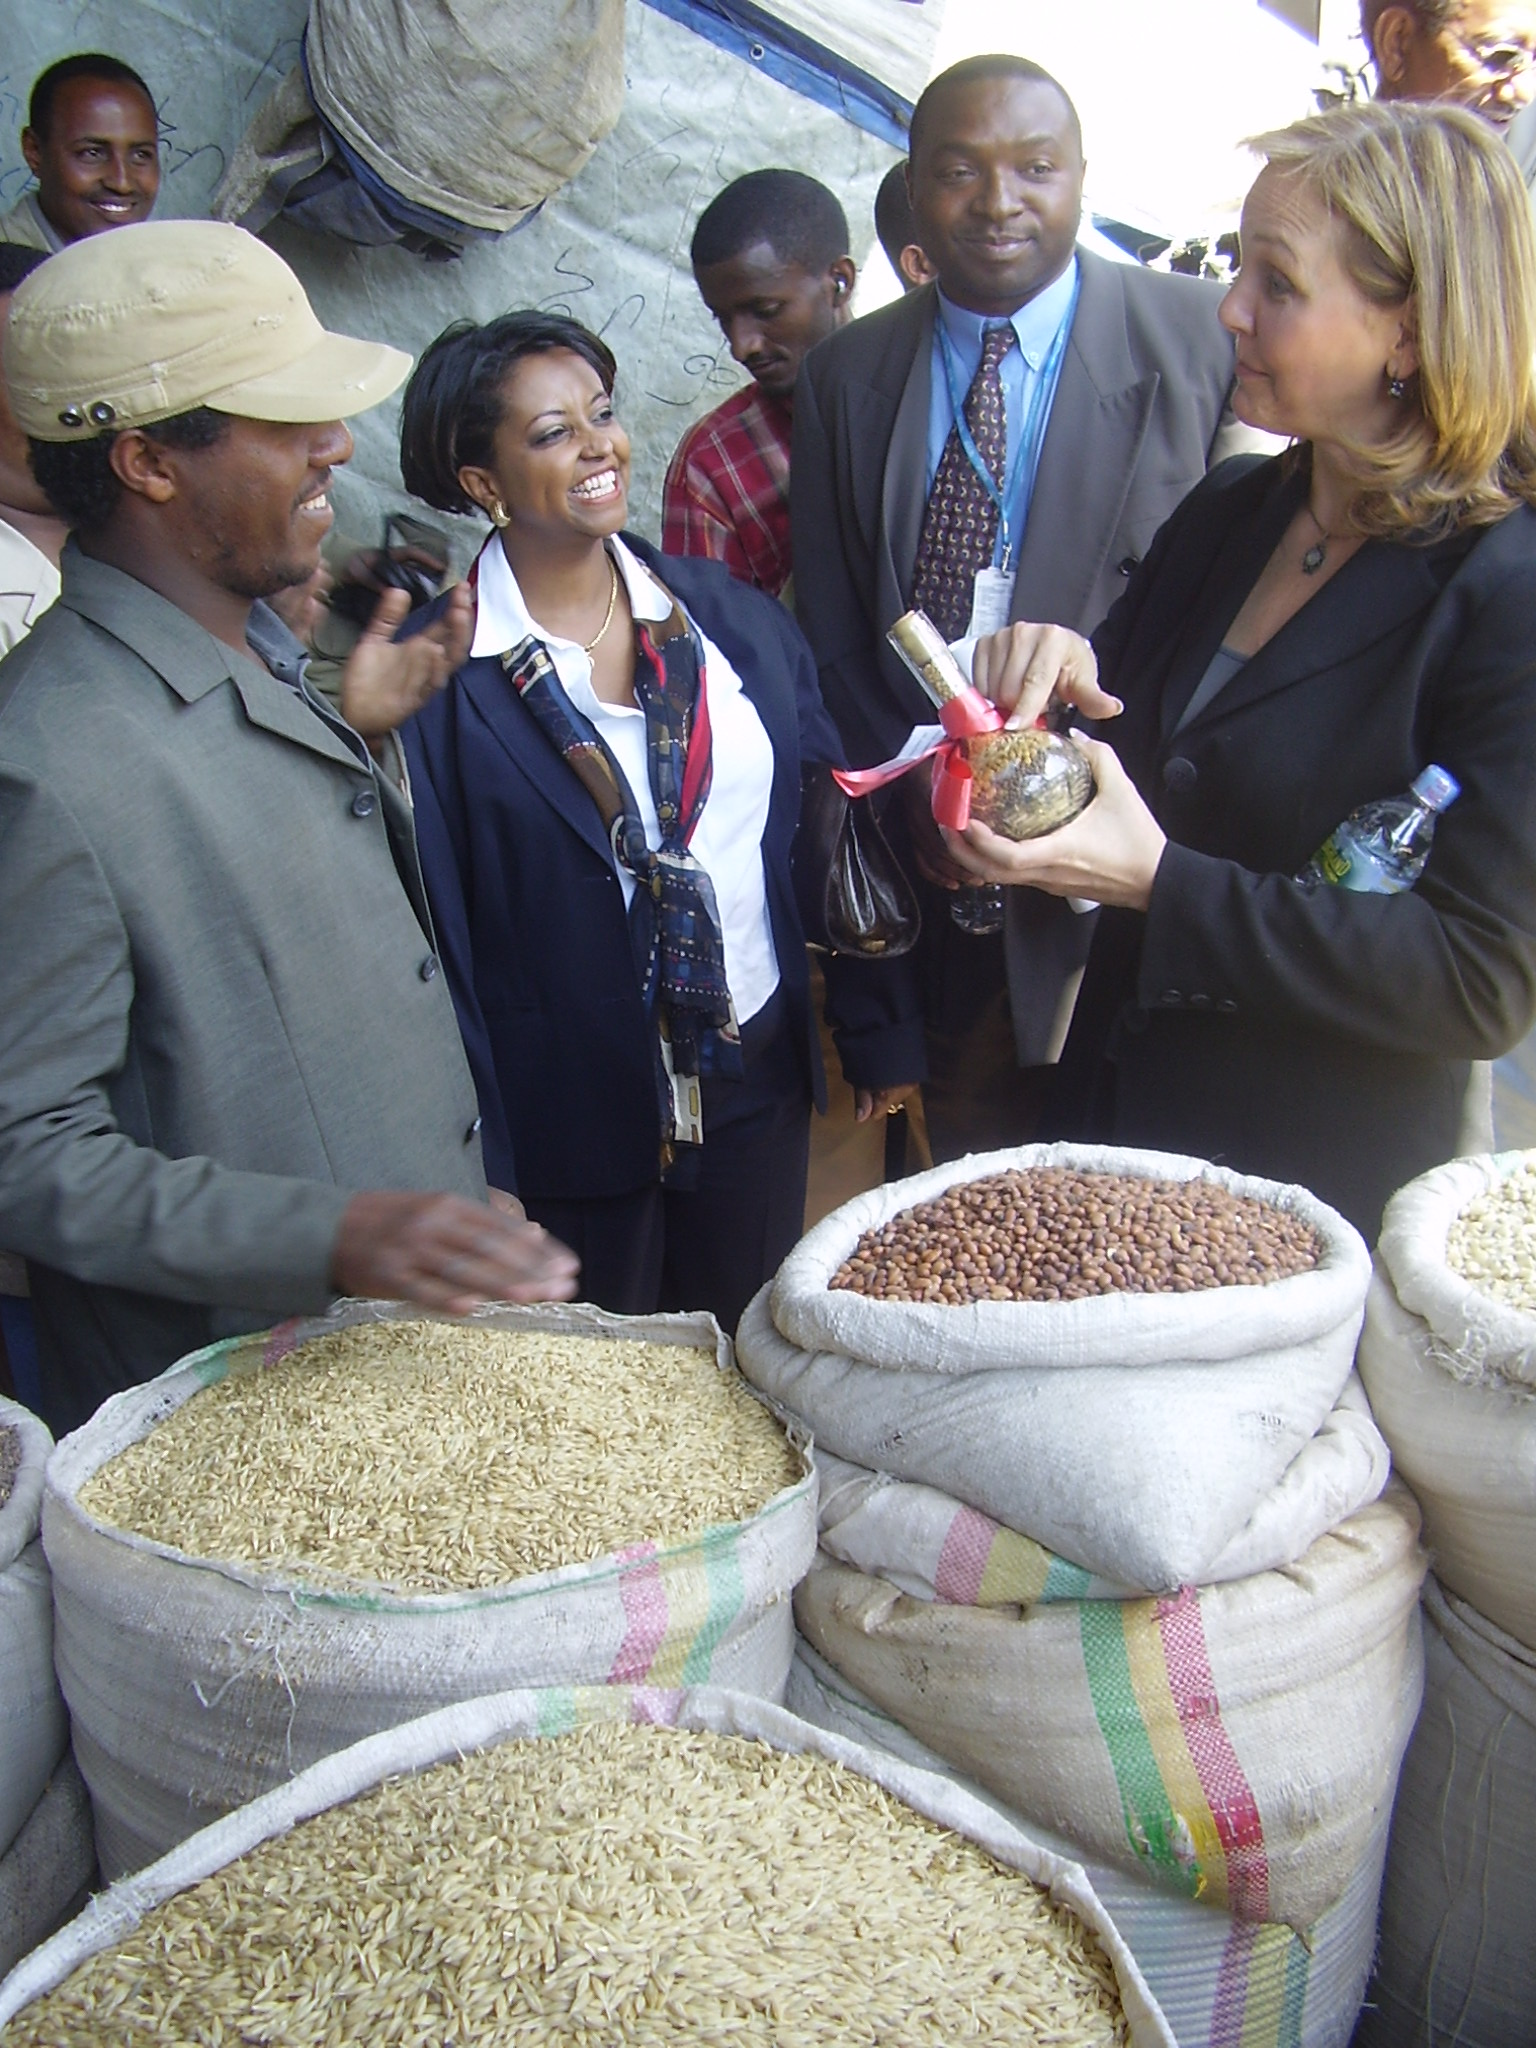 Josette Sheeran the World Food Program,   Executive Director asks a question to Alemayehu Dender one of the traders in Addis Ababa grain market, Ethiopia, 23 April 2007.